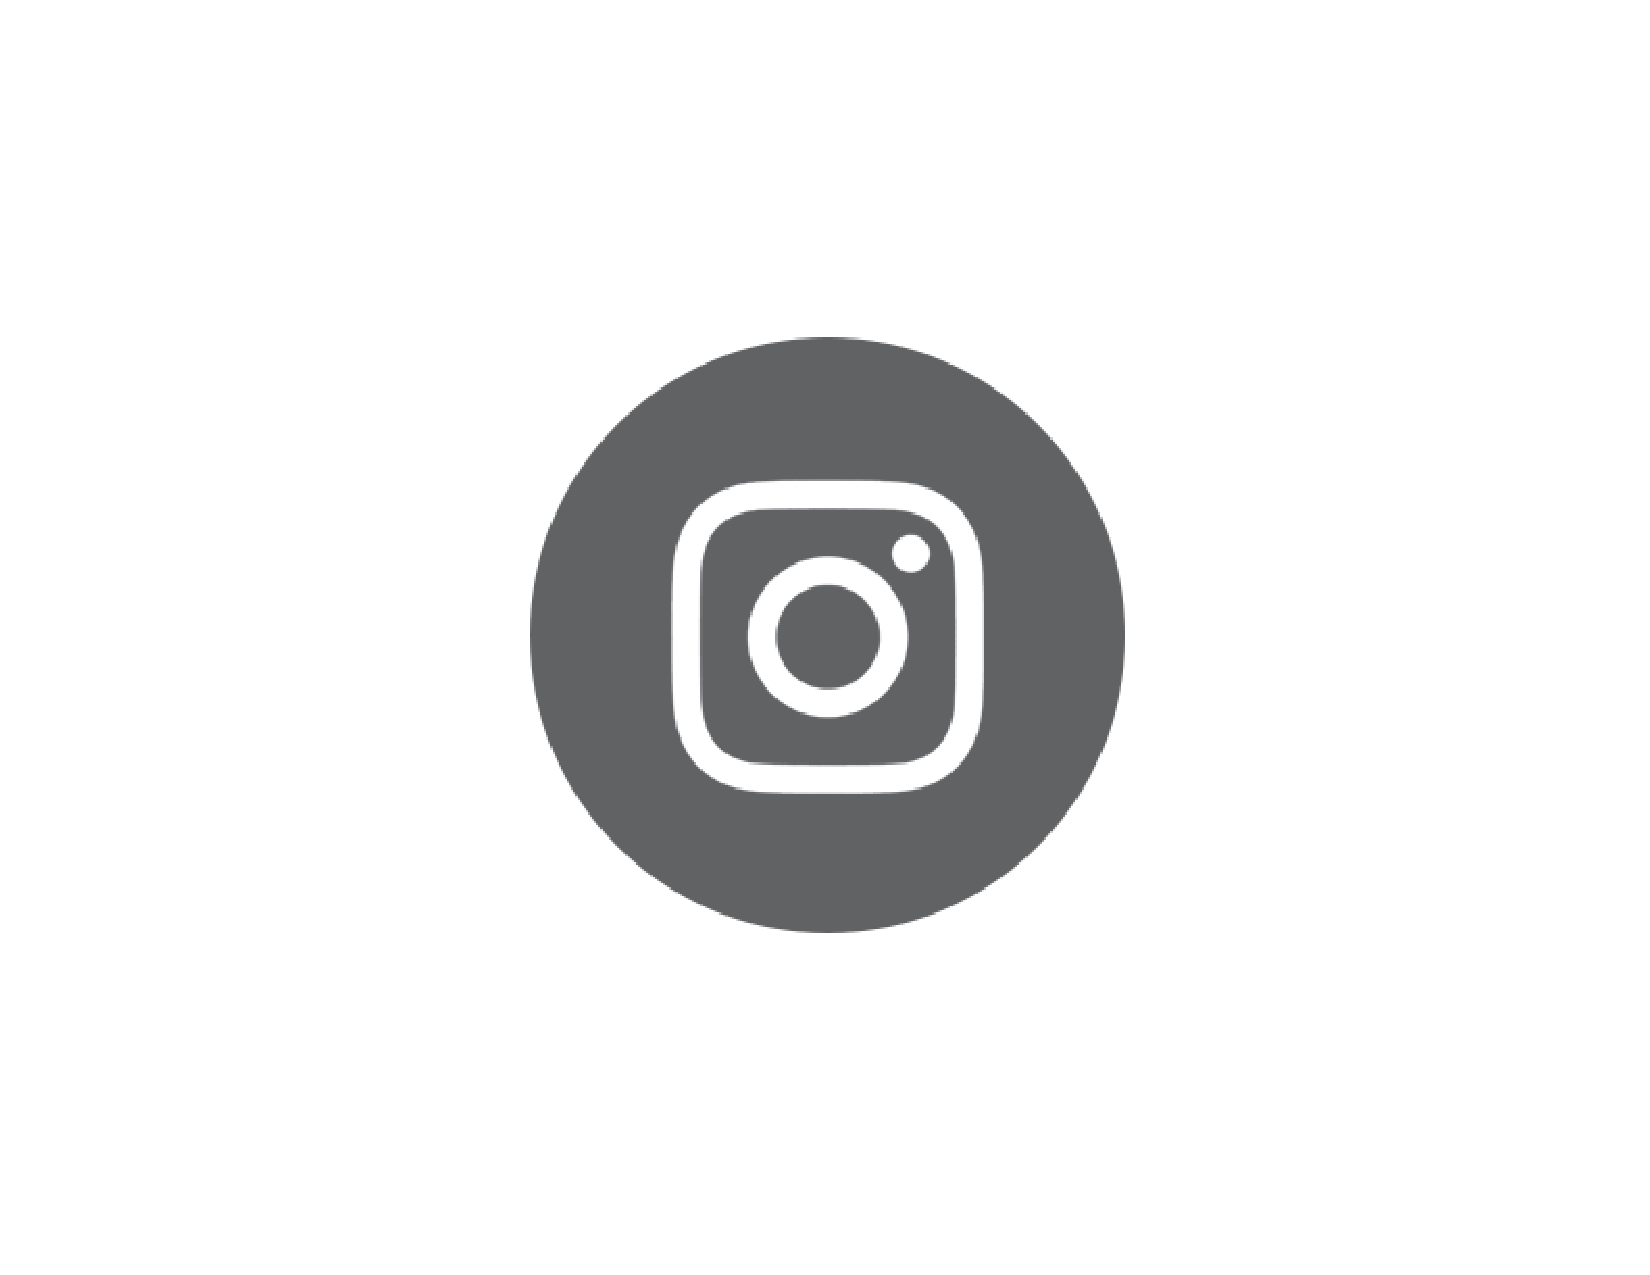 ig-icon-01.png